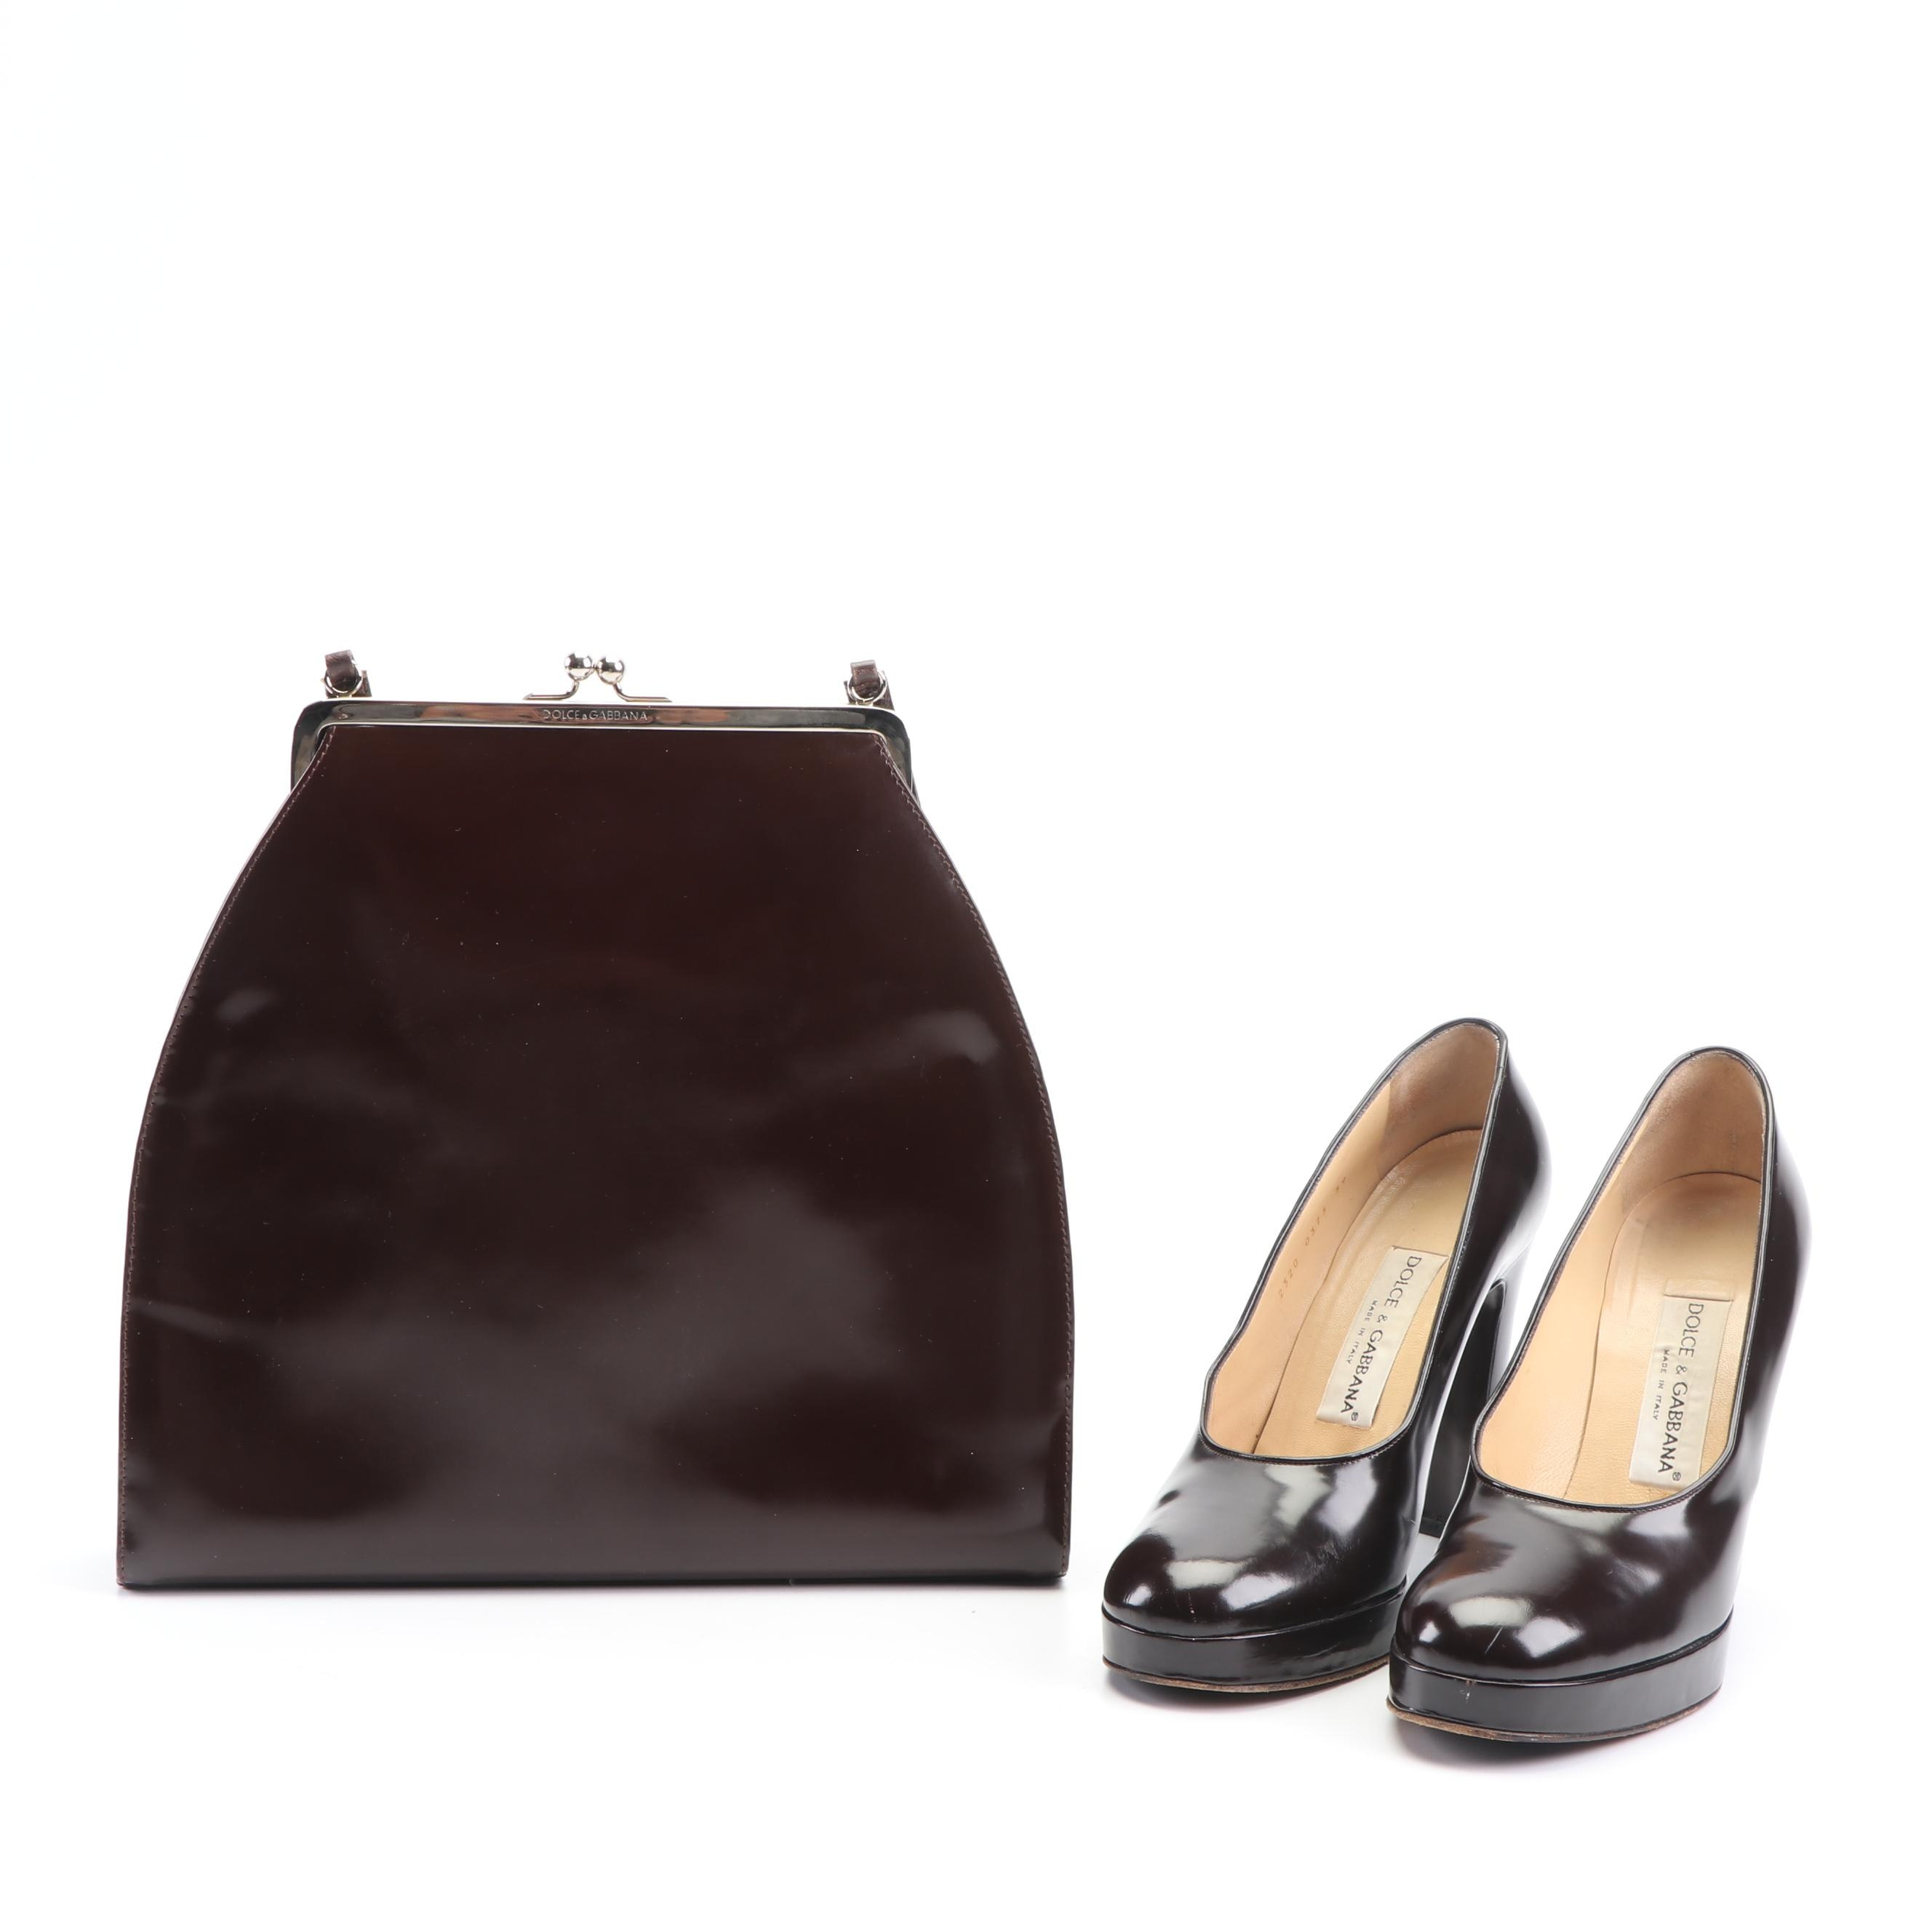 Dolce & Gabbana Brown Patent Leather Frame Bag and High-Heeled Shoes